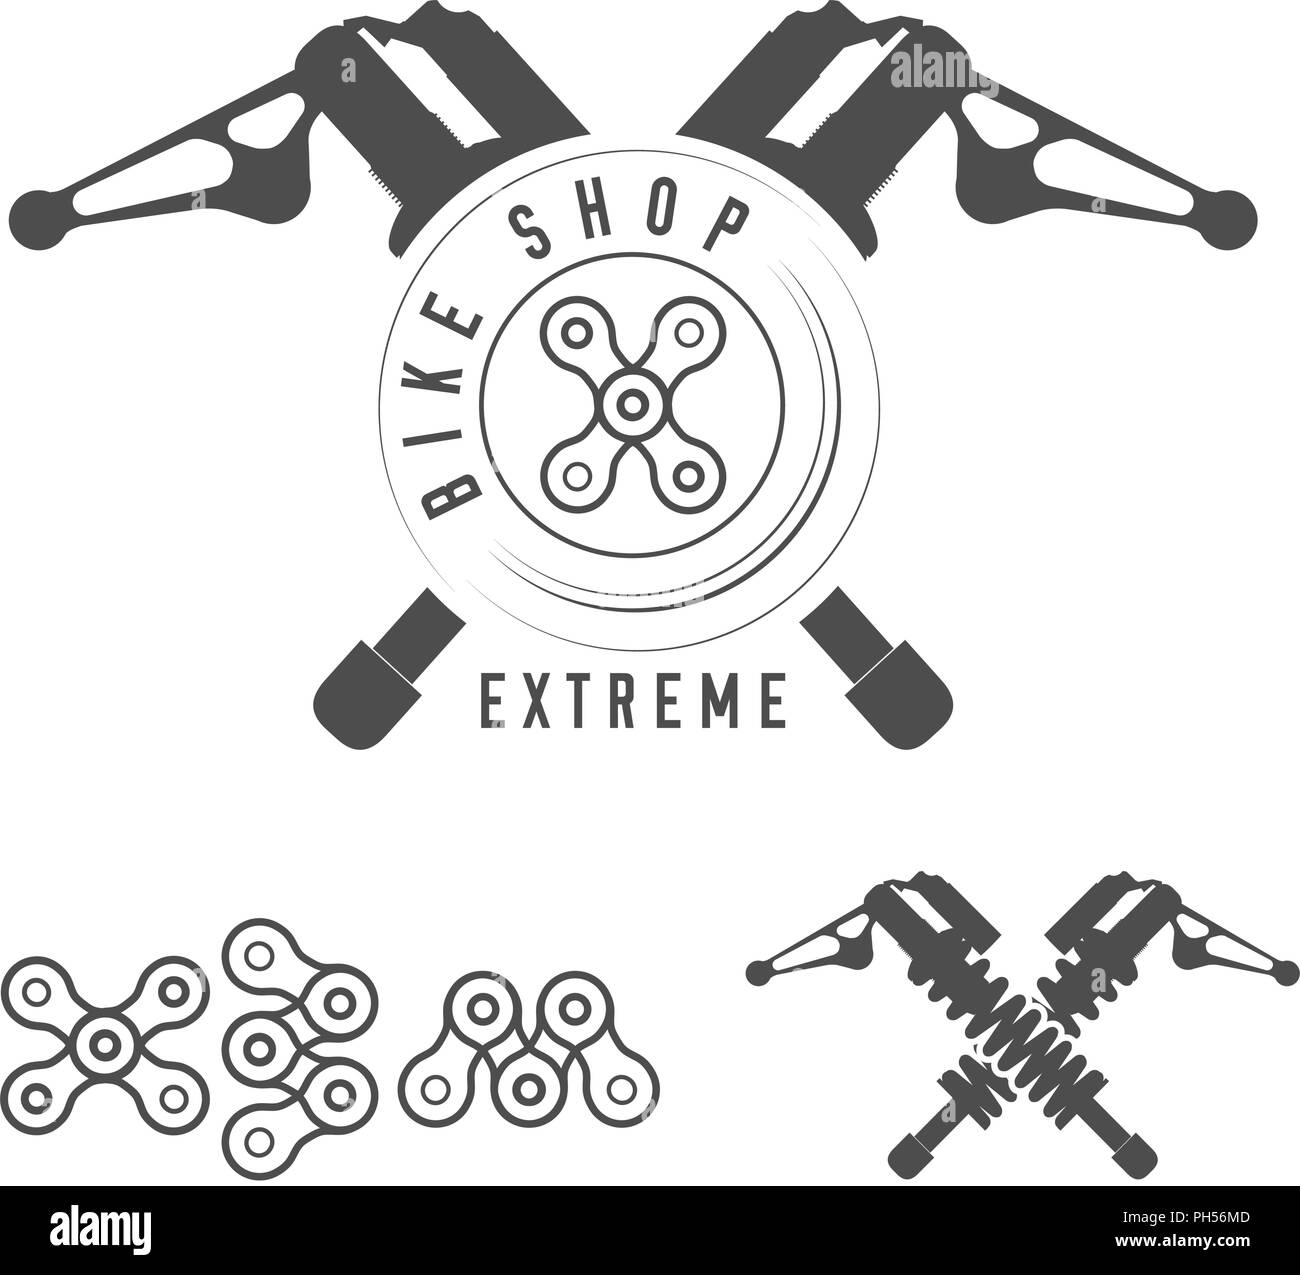 Bicycle Shop, Extreme Bikes Emblem. Crossed Rear Shock Absorbers, X Sign Made of Bicycle Chain. Monochrome Vector Illustration. Extreme Typography. - Stock Image